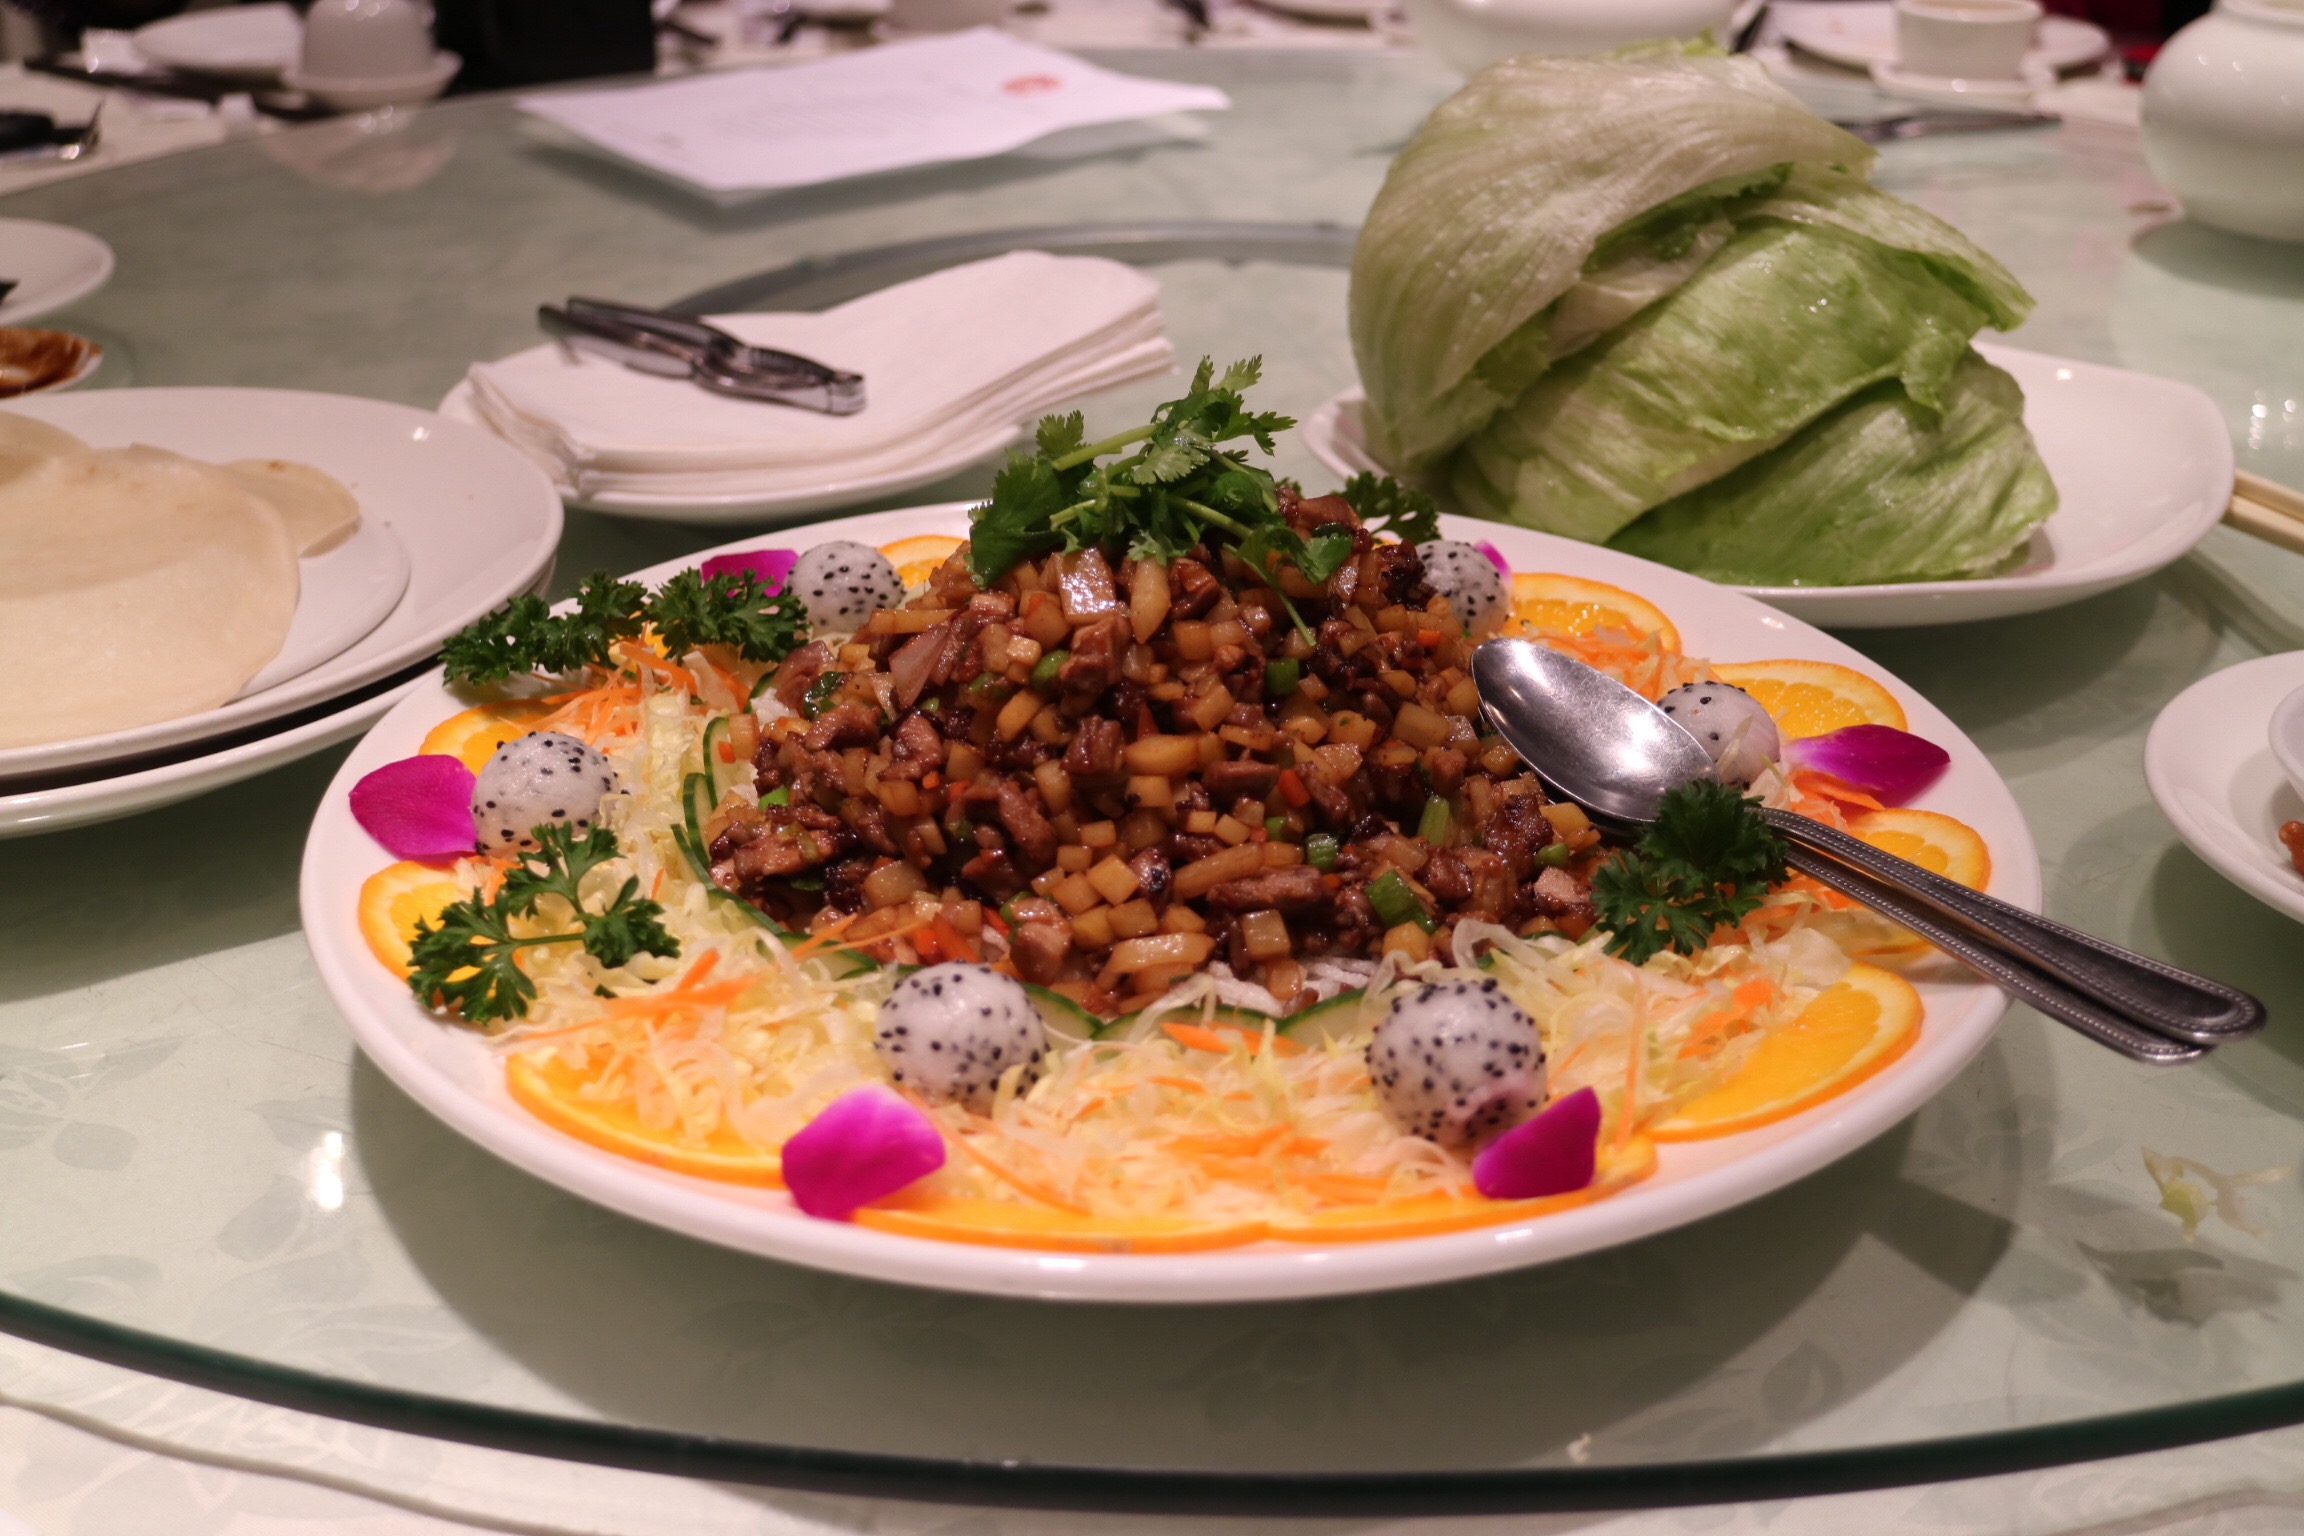 Duck meat with lettuce wraps